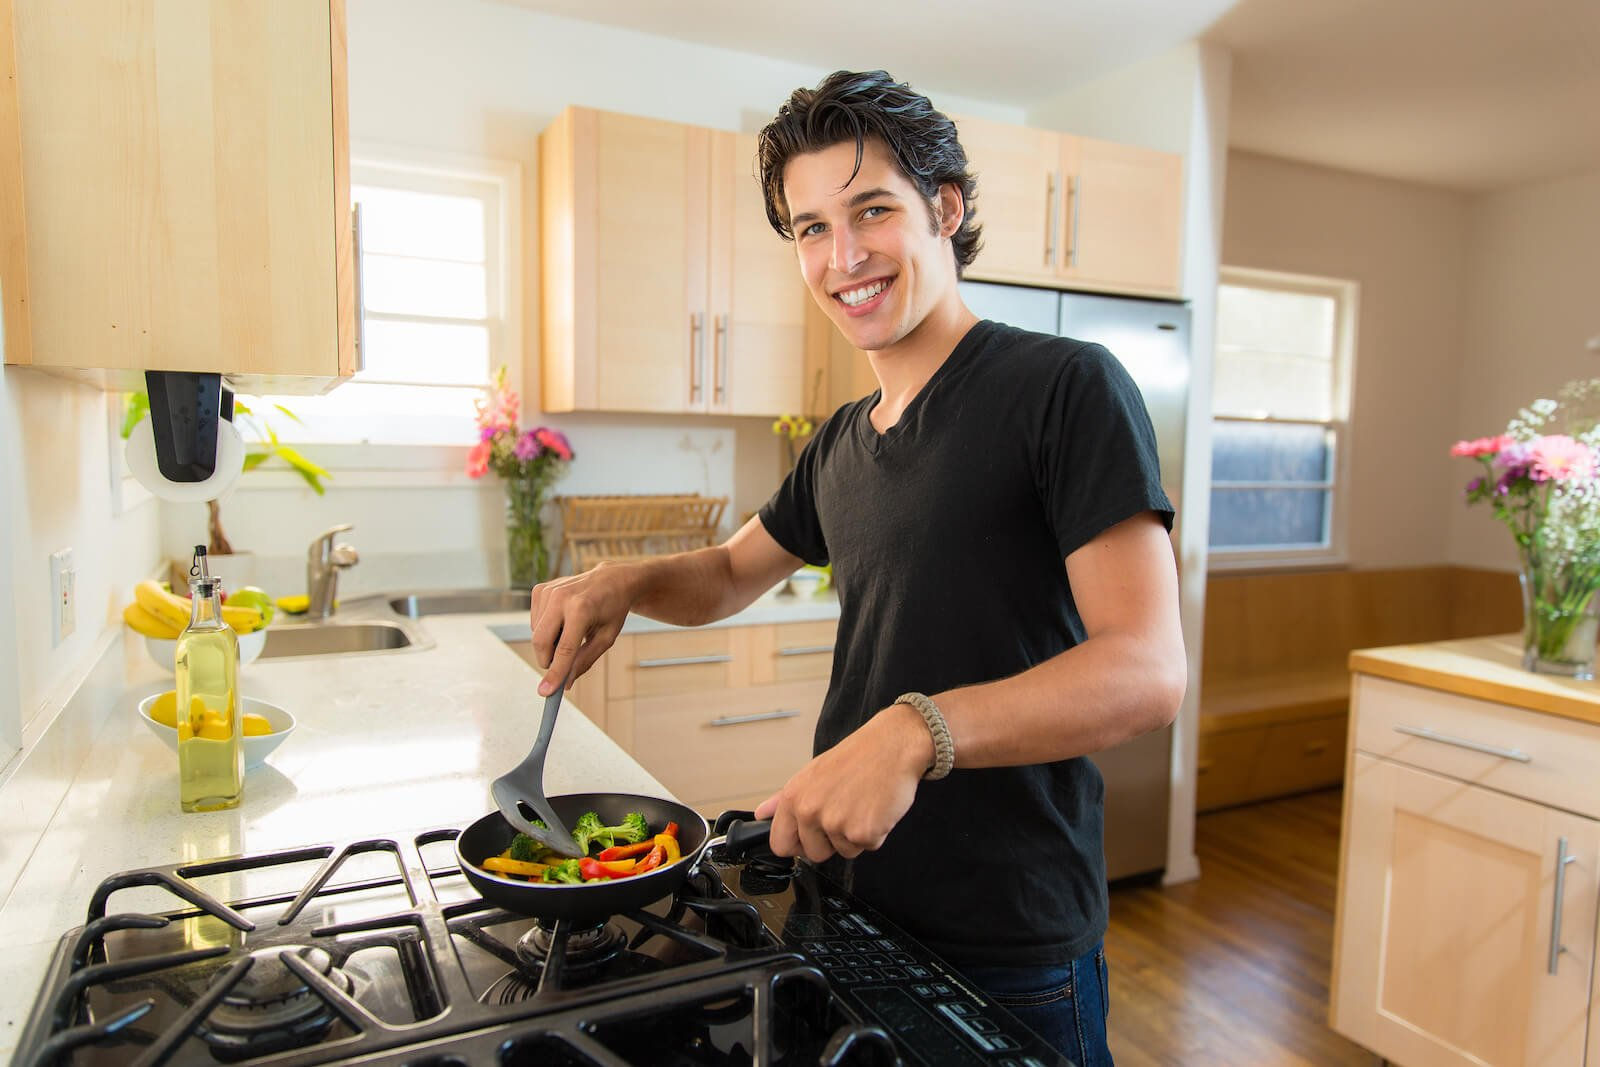 Person happily cooking at home